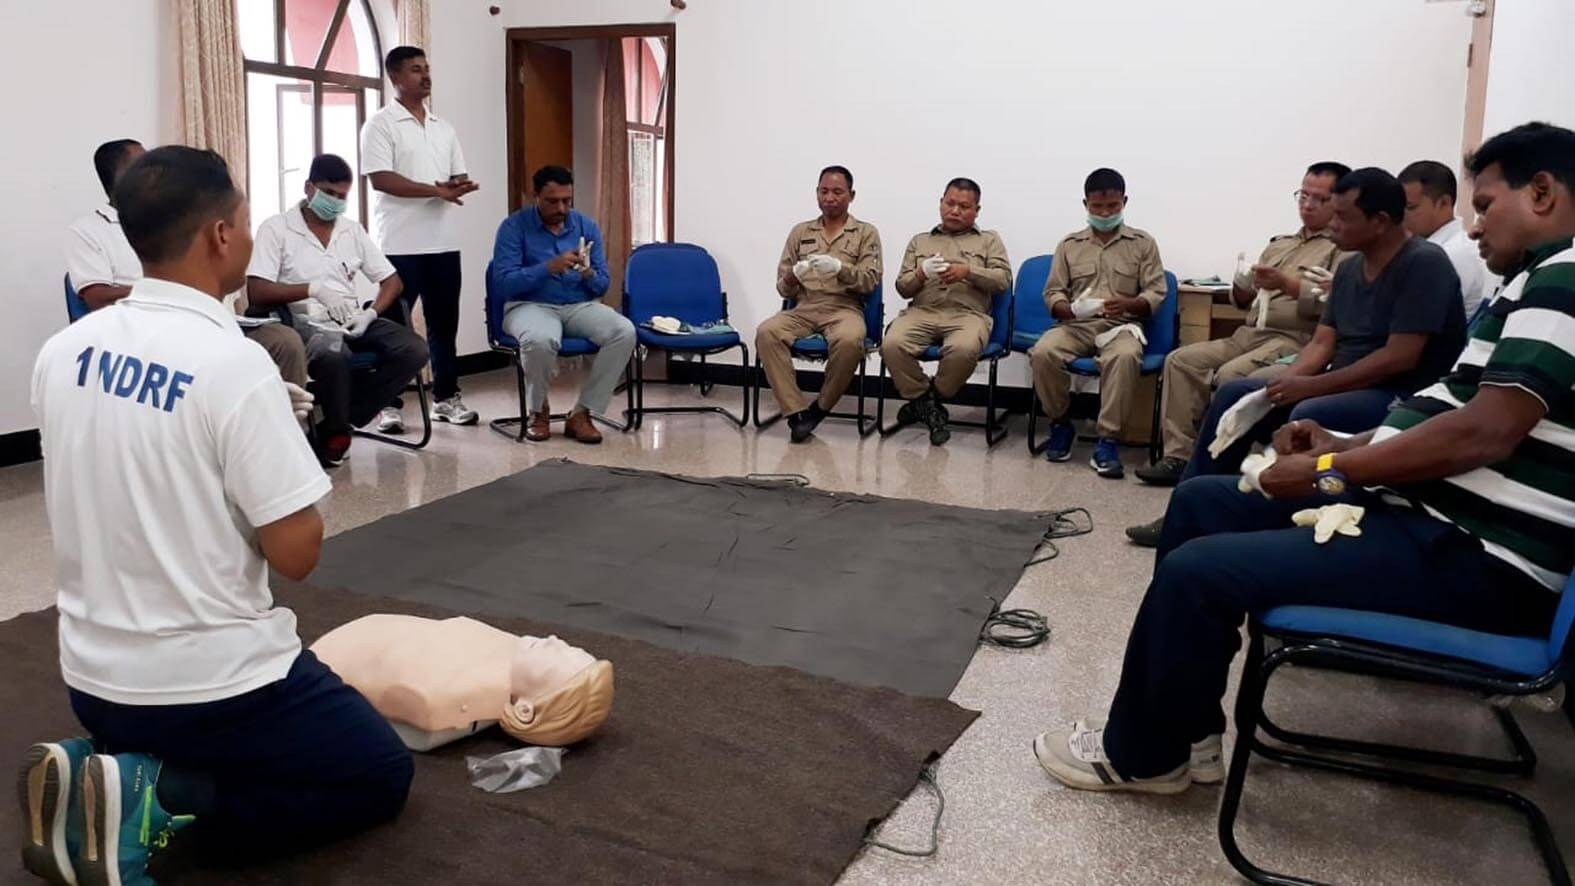 NDRF conducts disaster response training